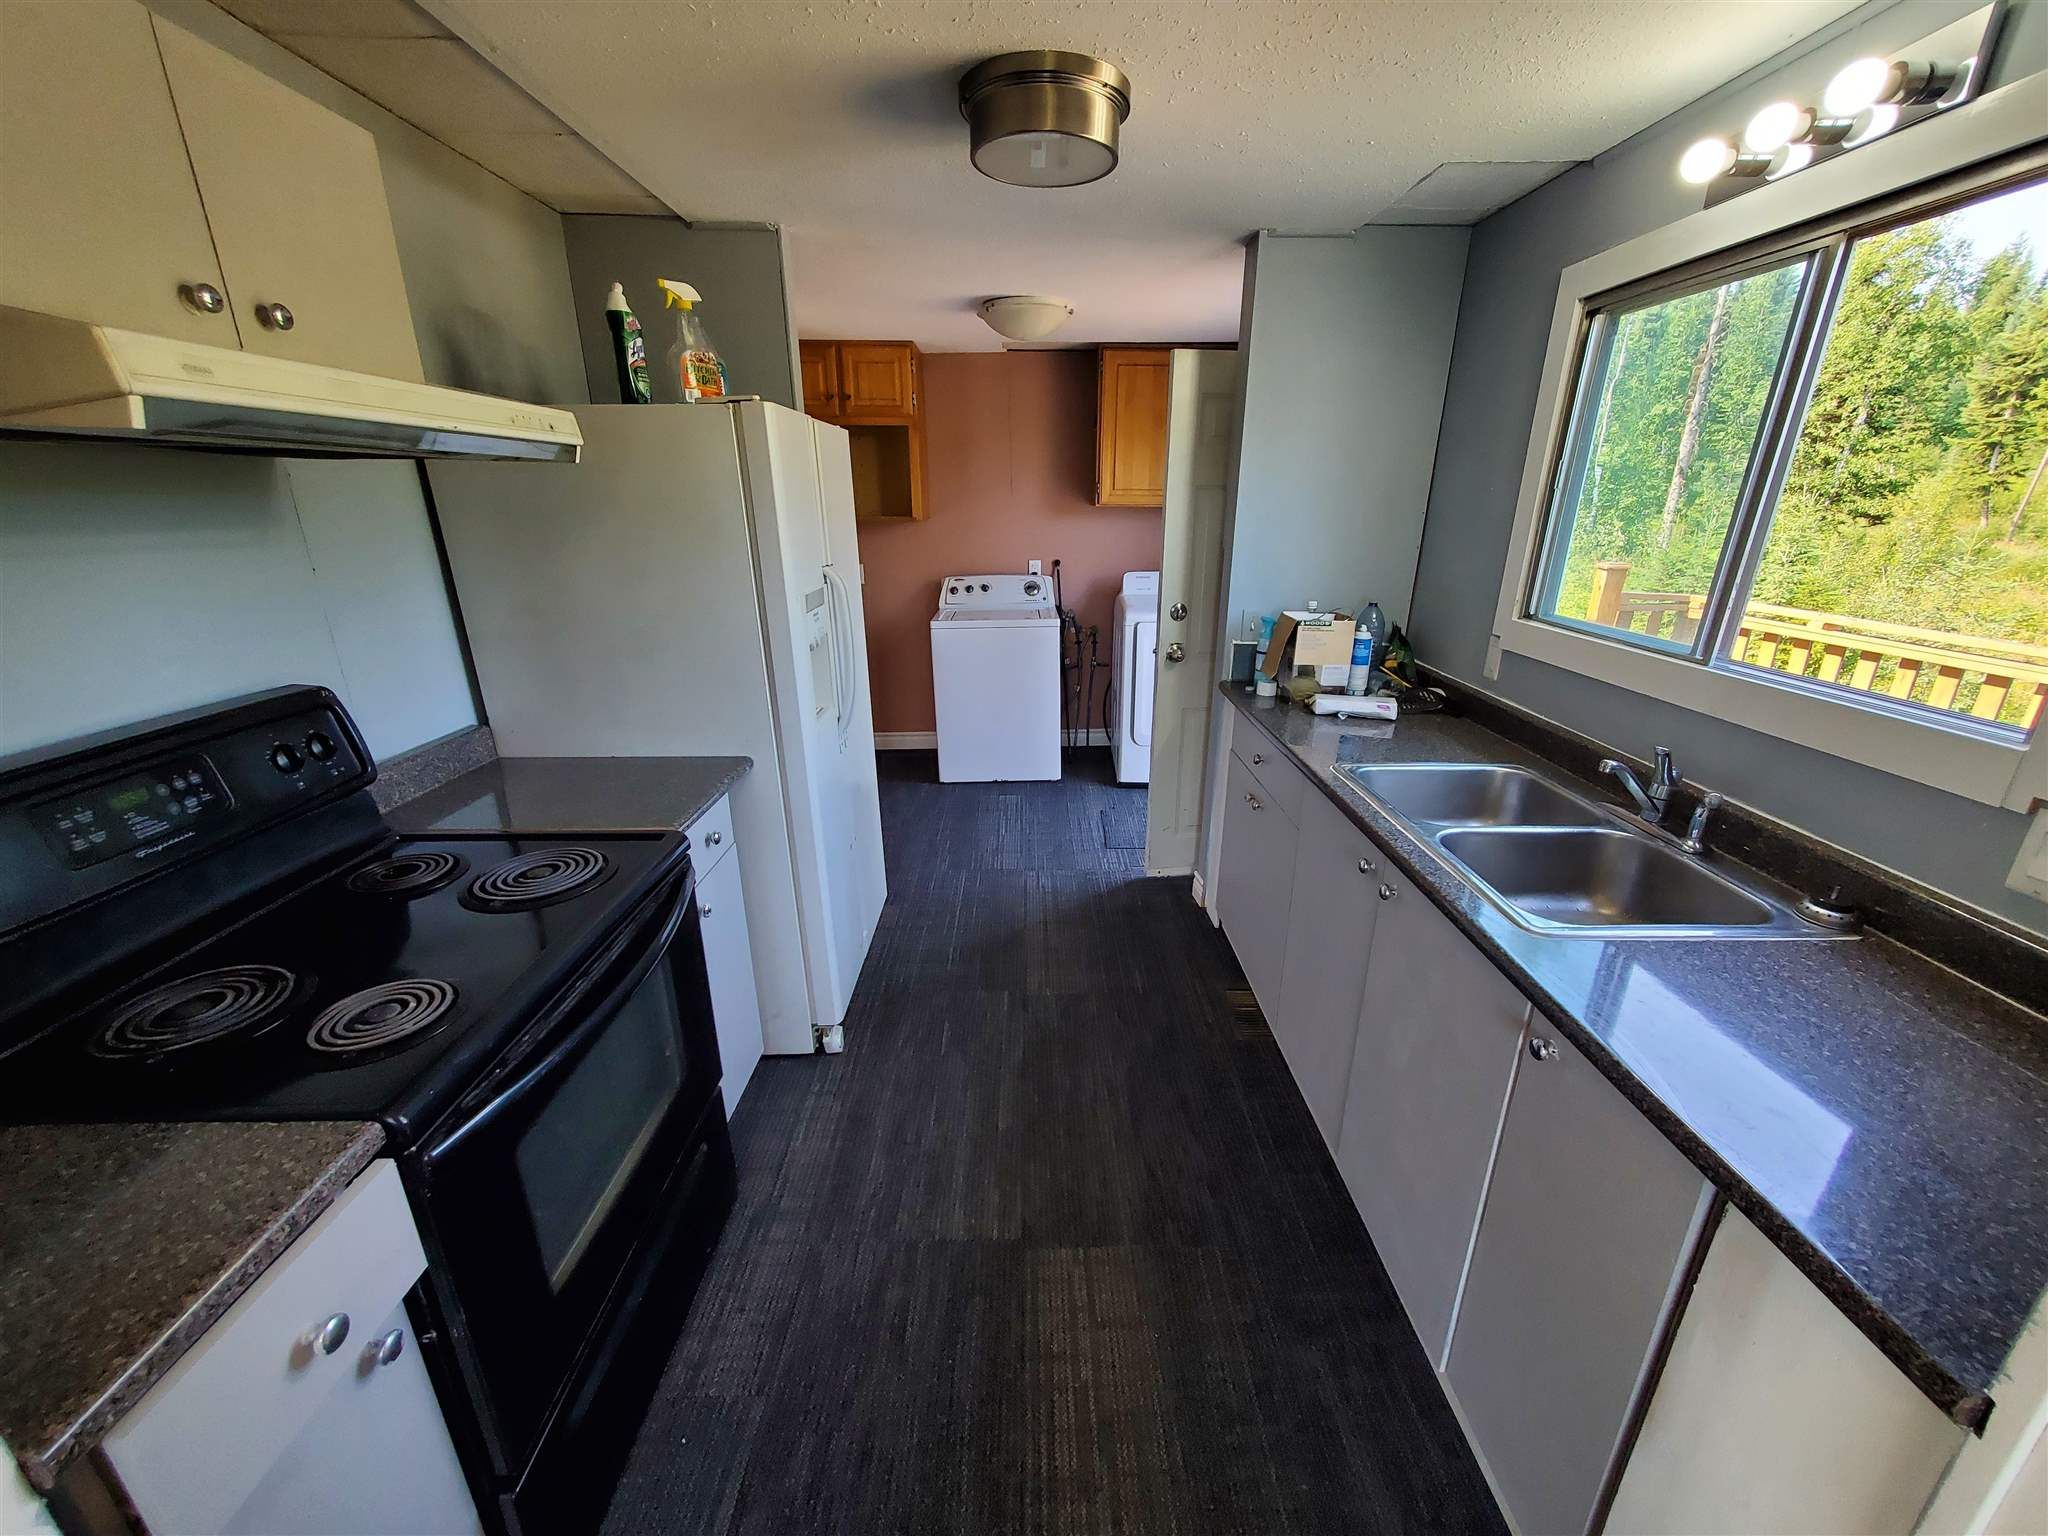 Photo 7: Photos: 2507 NORWOOD Road in Quesnel: Bouchie Lake Manufactured Home for sale (Quesnel (Zone 28))  : MLS®# R2606130